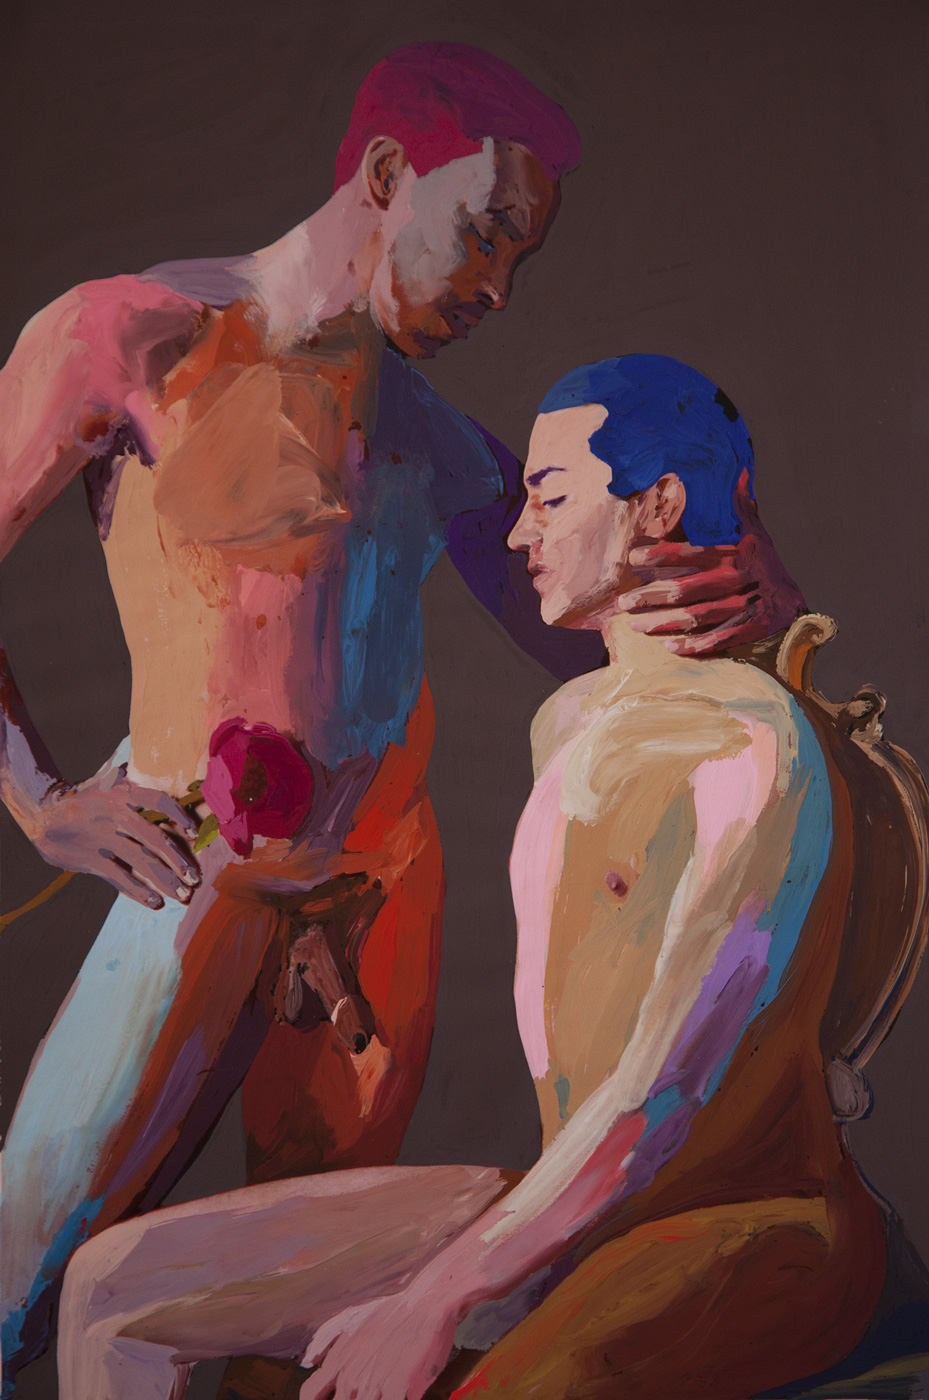 Manelich-and-Filippo-2-11x17-gouache-on-photo-2013-HIRES-C-Finley-Art.jpg